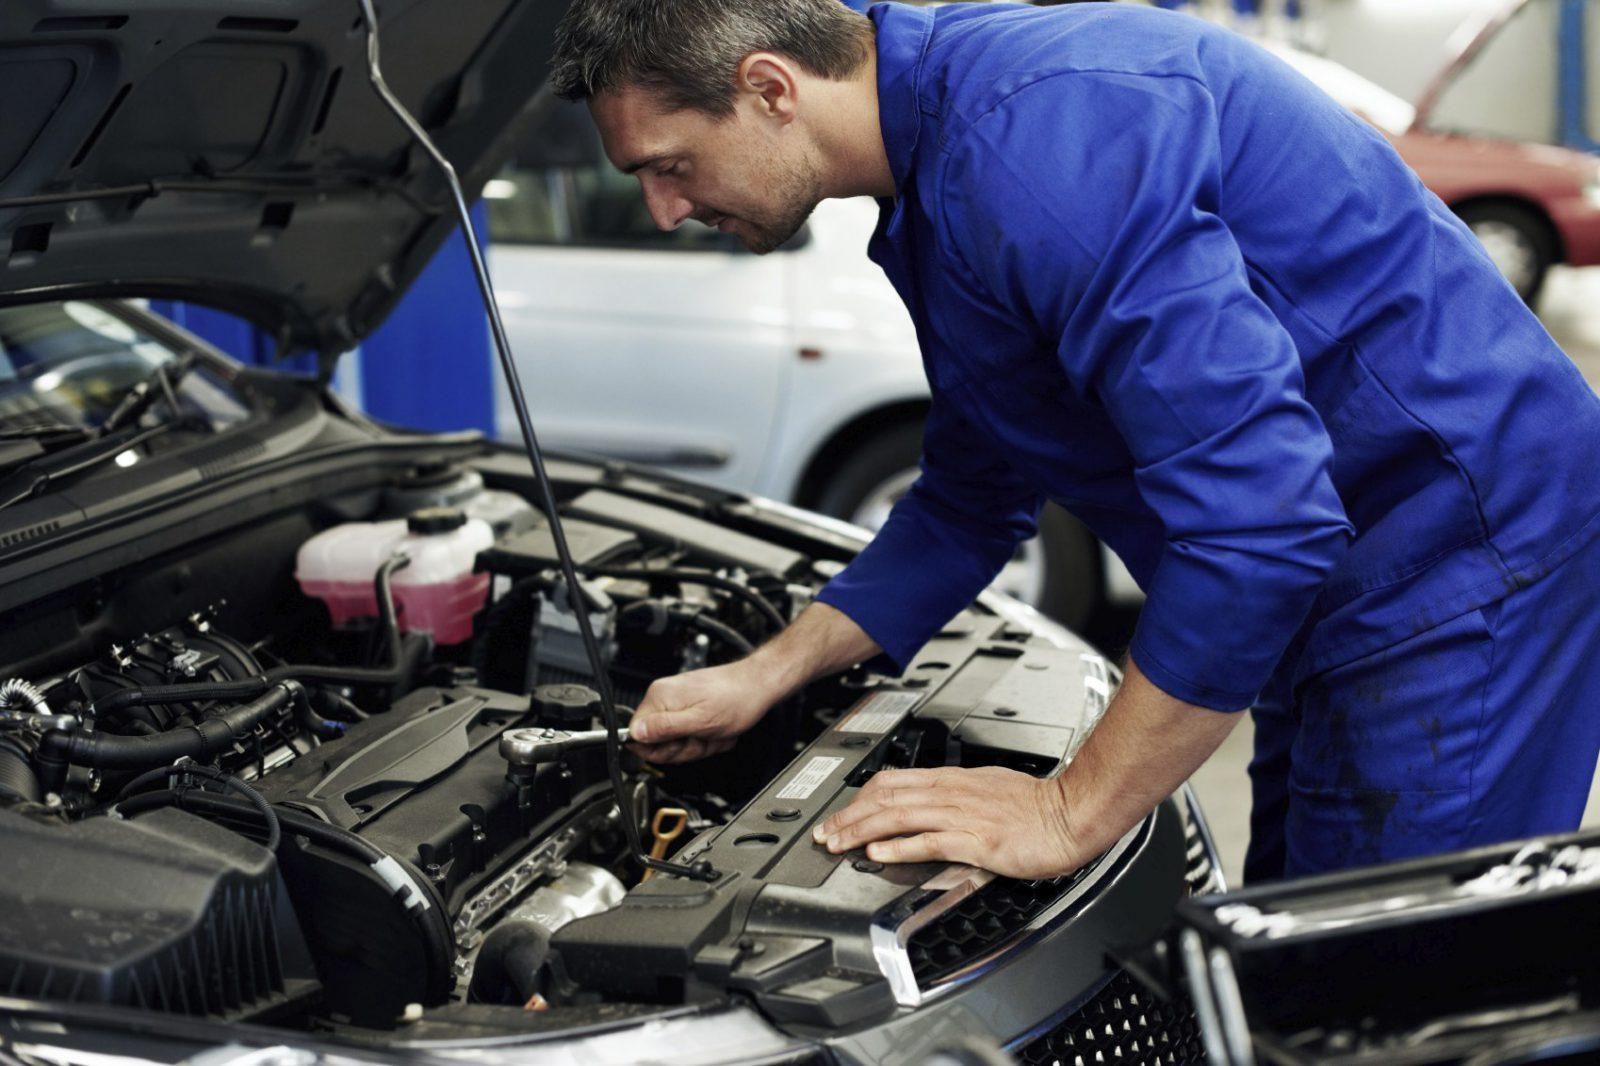 White Smoke From Exhaust Main Causes And How To Fix 2001 Nissan Xterra Overheating Problem Intake Gasket Is The First Part Check When You Have